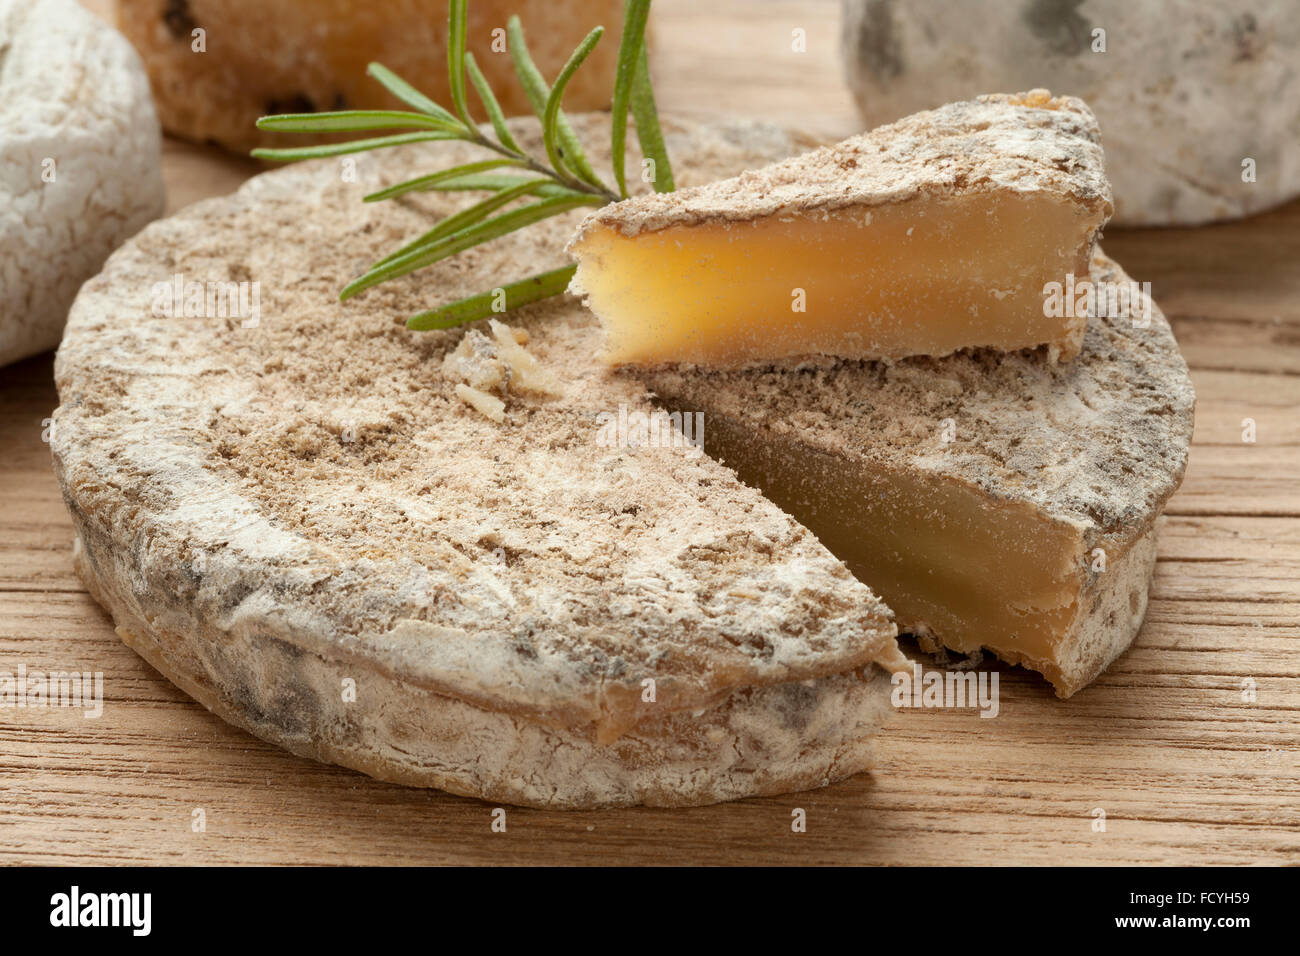 Traditional french goats cheese three weeks old - Stock Image